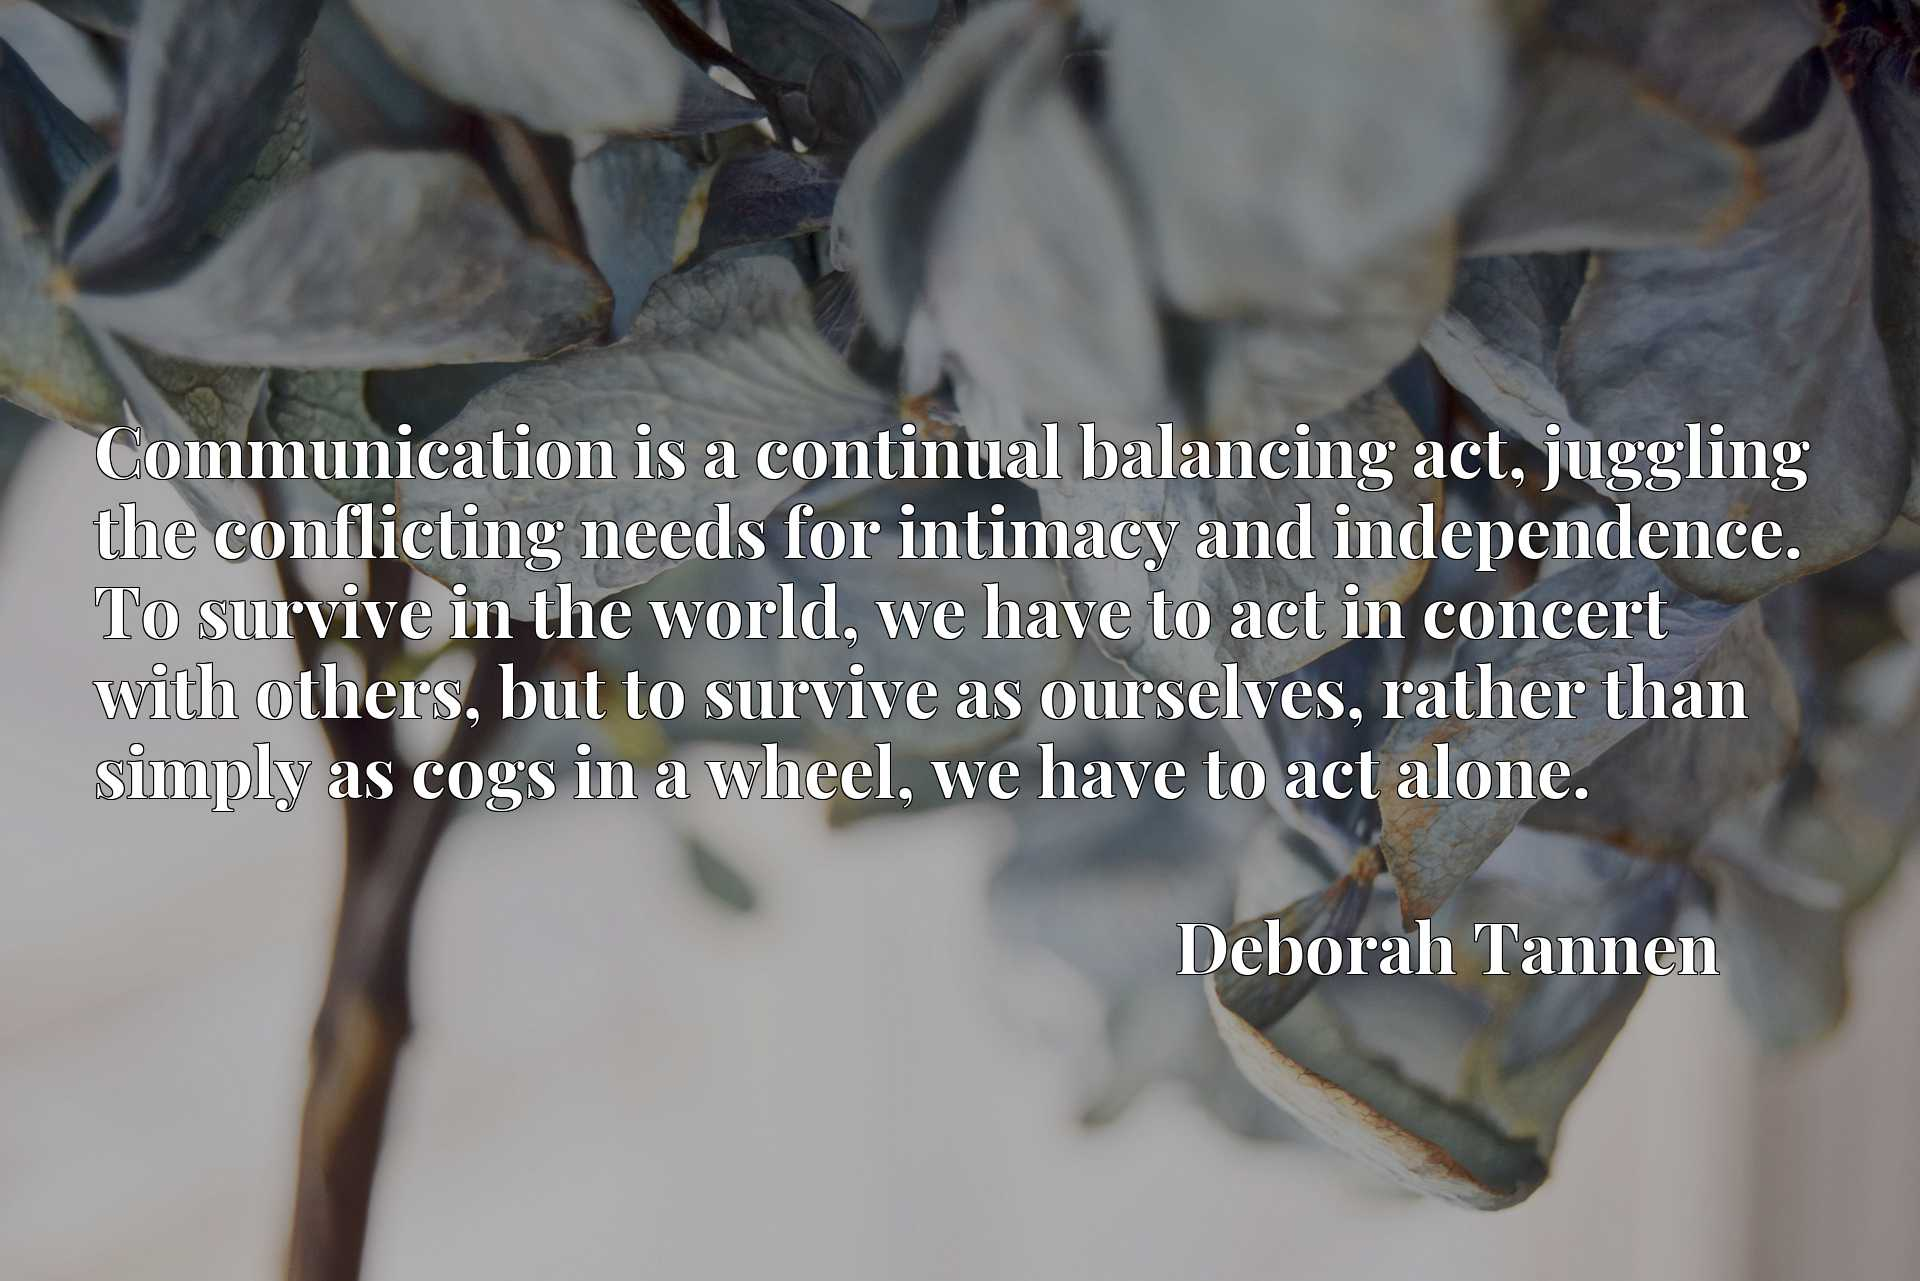 Communication is a continual balancing act, juggling the conflicting needs for intimacy and independence. To survive in the world, we have to act in concert with others, but to survive as ourselves, rather than simply as cogs in a wheel, we have to act alone.